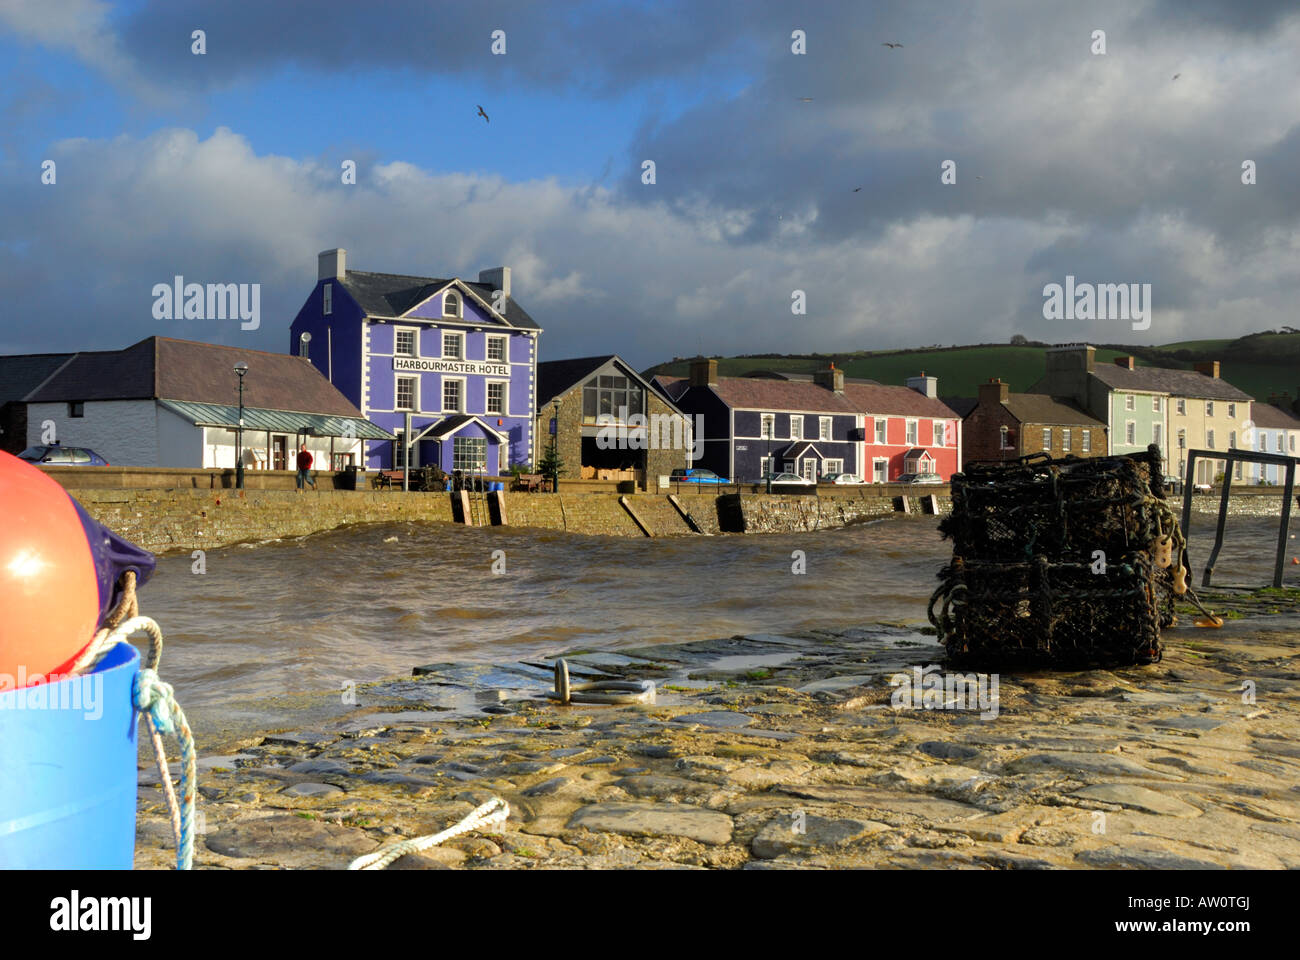 Aberaeron, Wales, showing a swell flowing into the harbour on a windy day - Stock Image